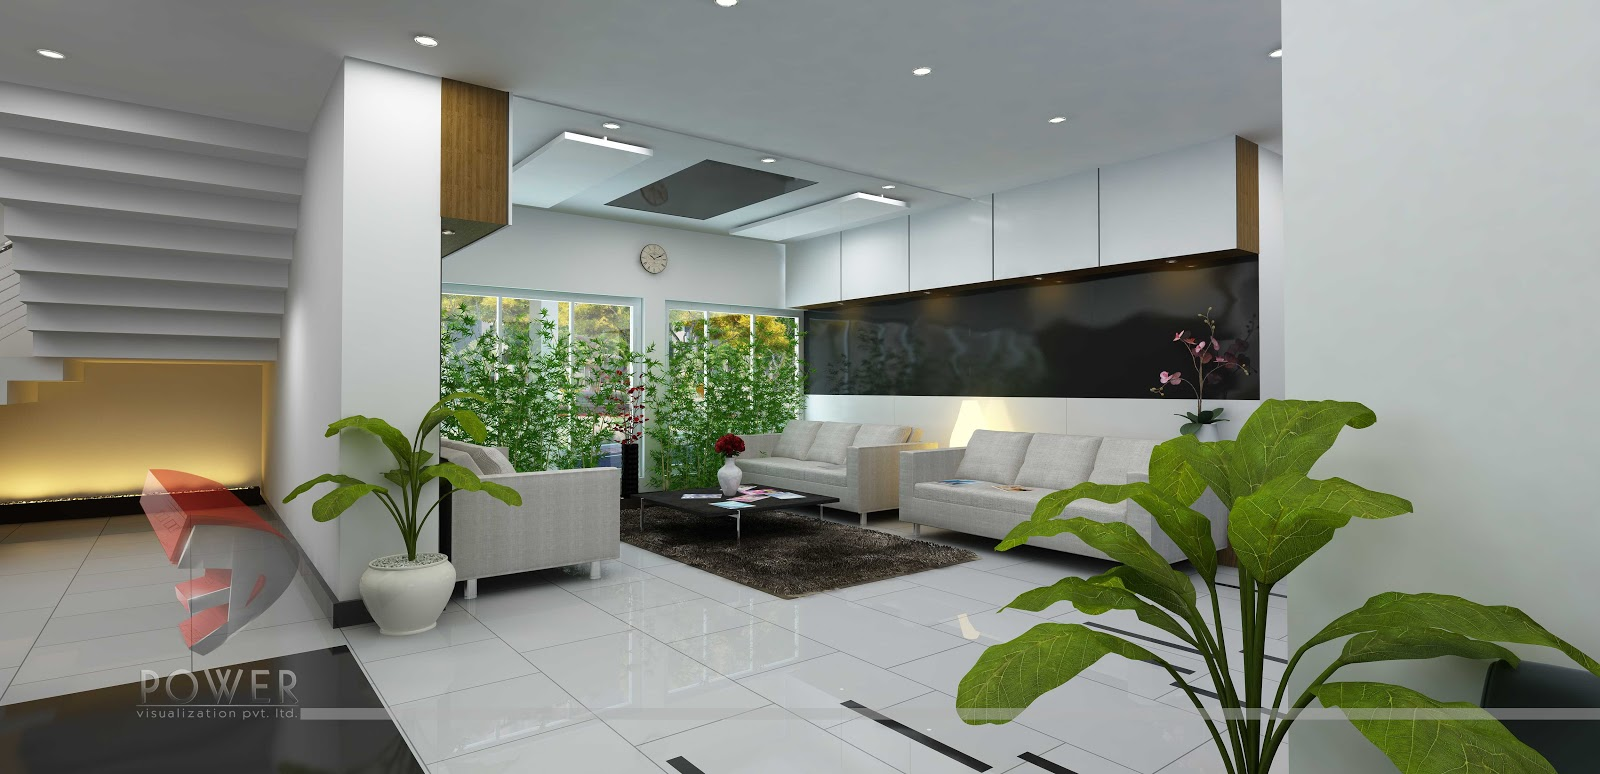 High Quality 3d Interior Designs 3d Home Design App 3d Home Design Mac   3d Home Design